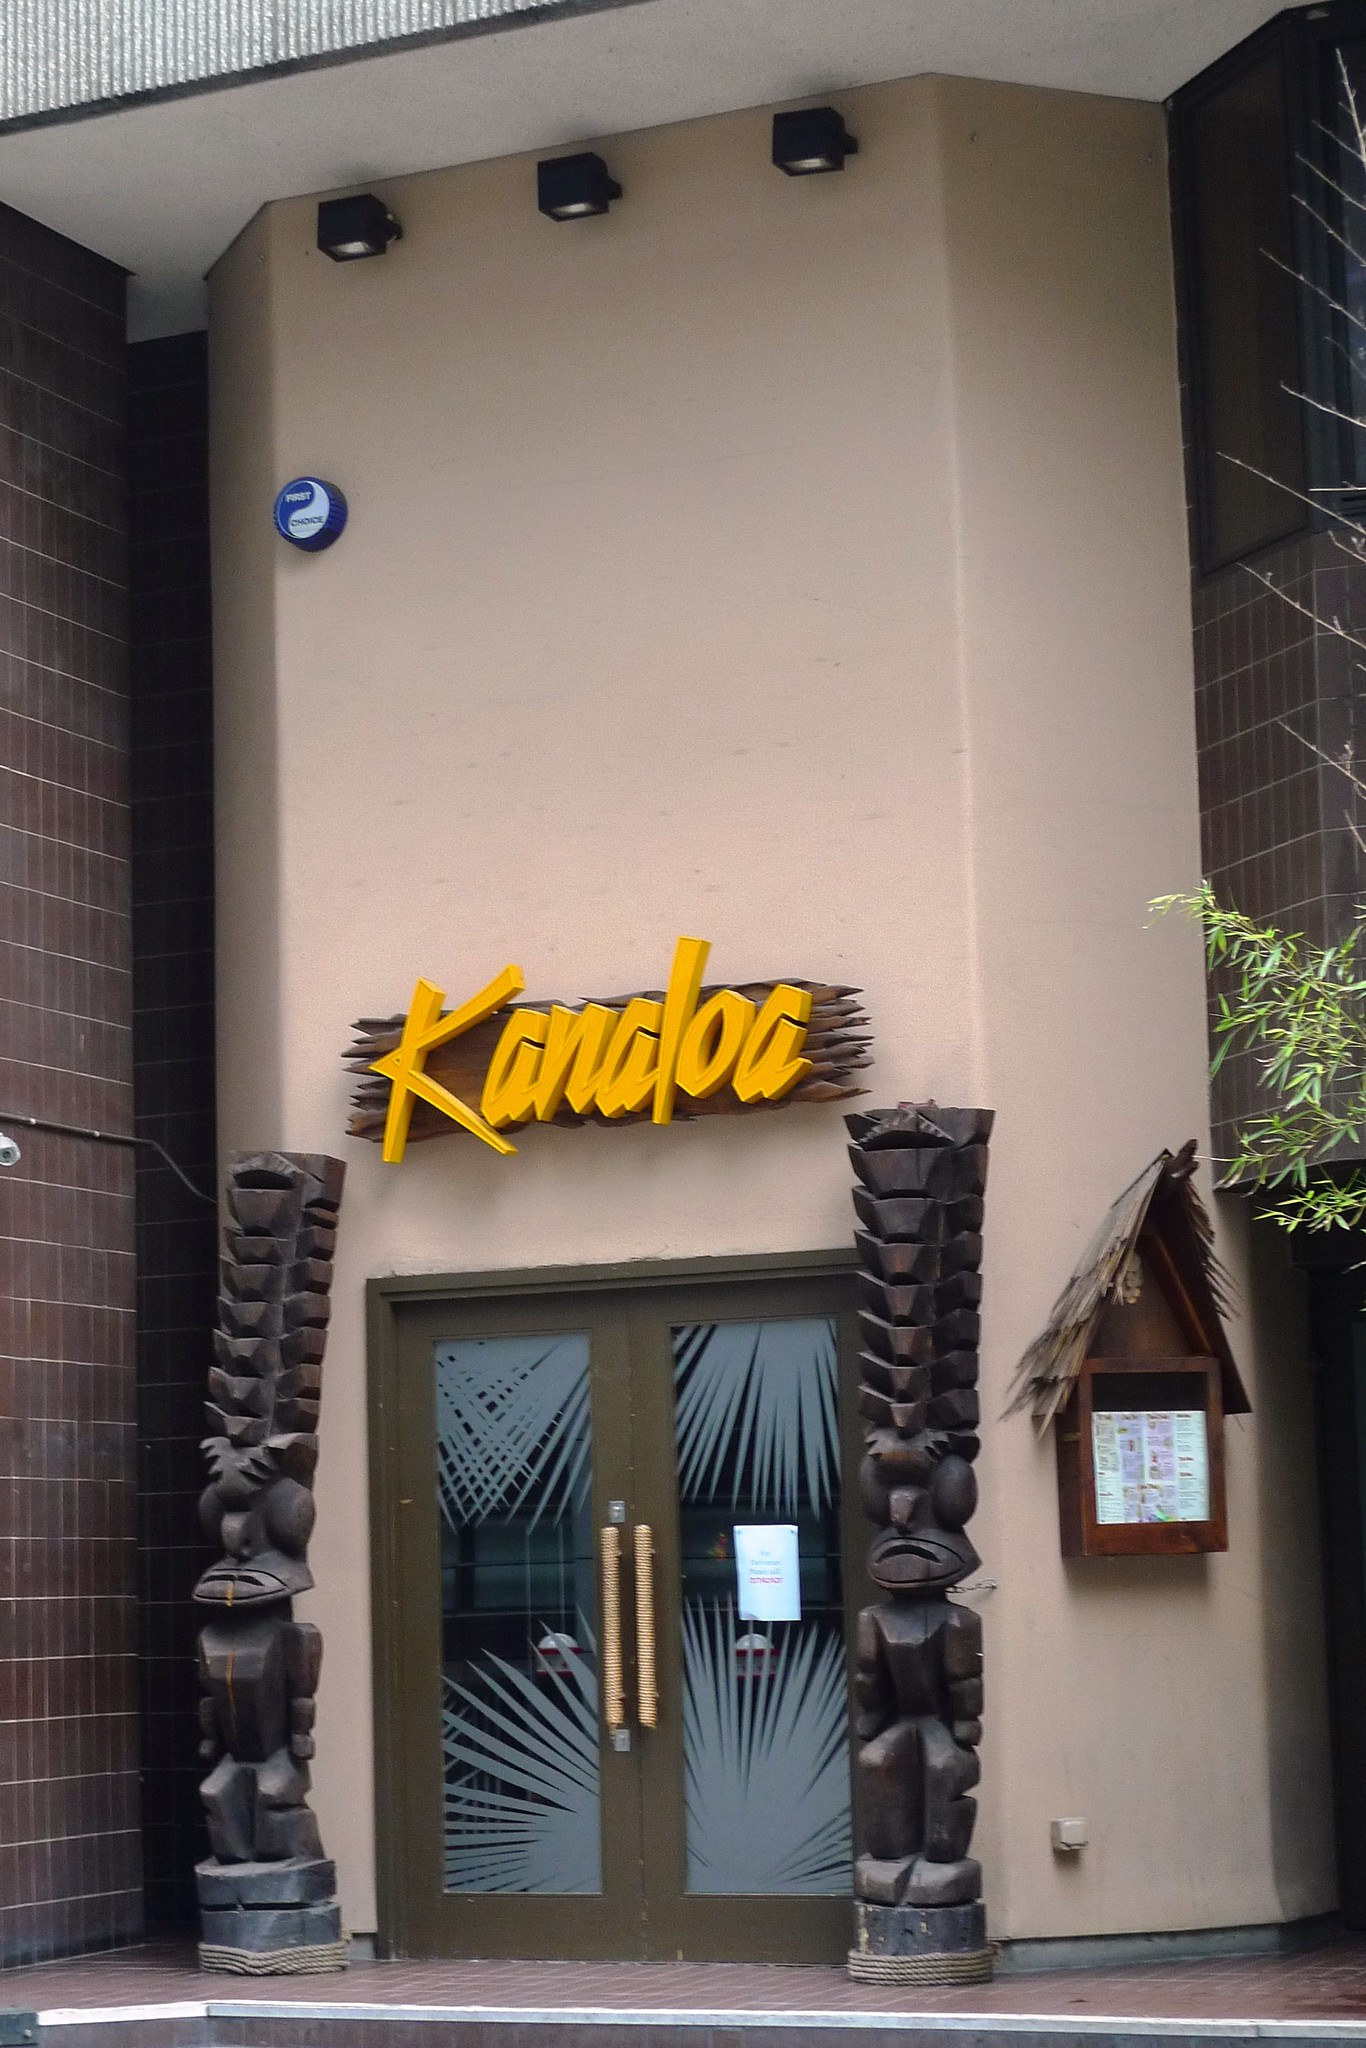 Kanaloa london